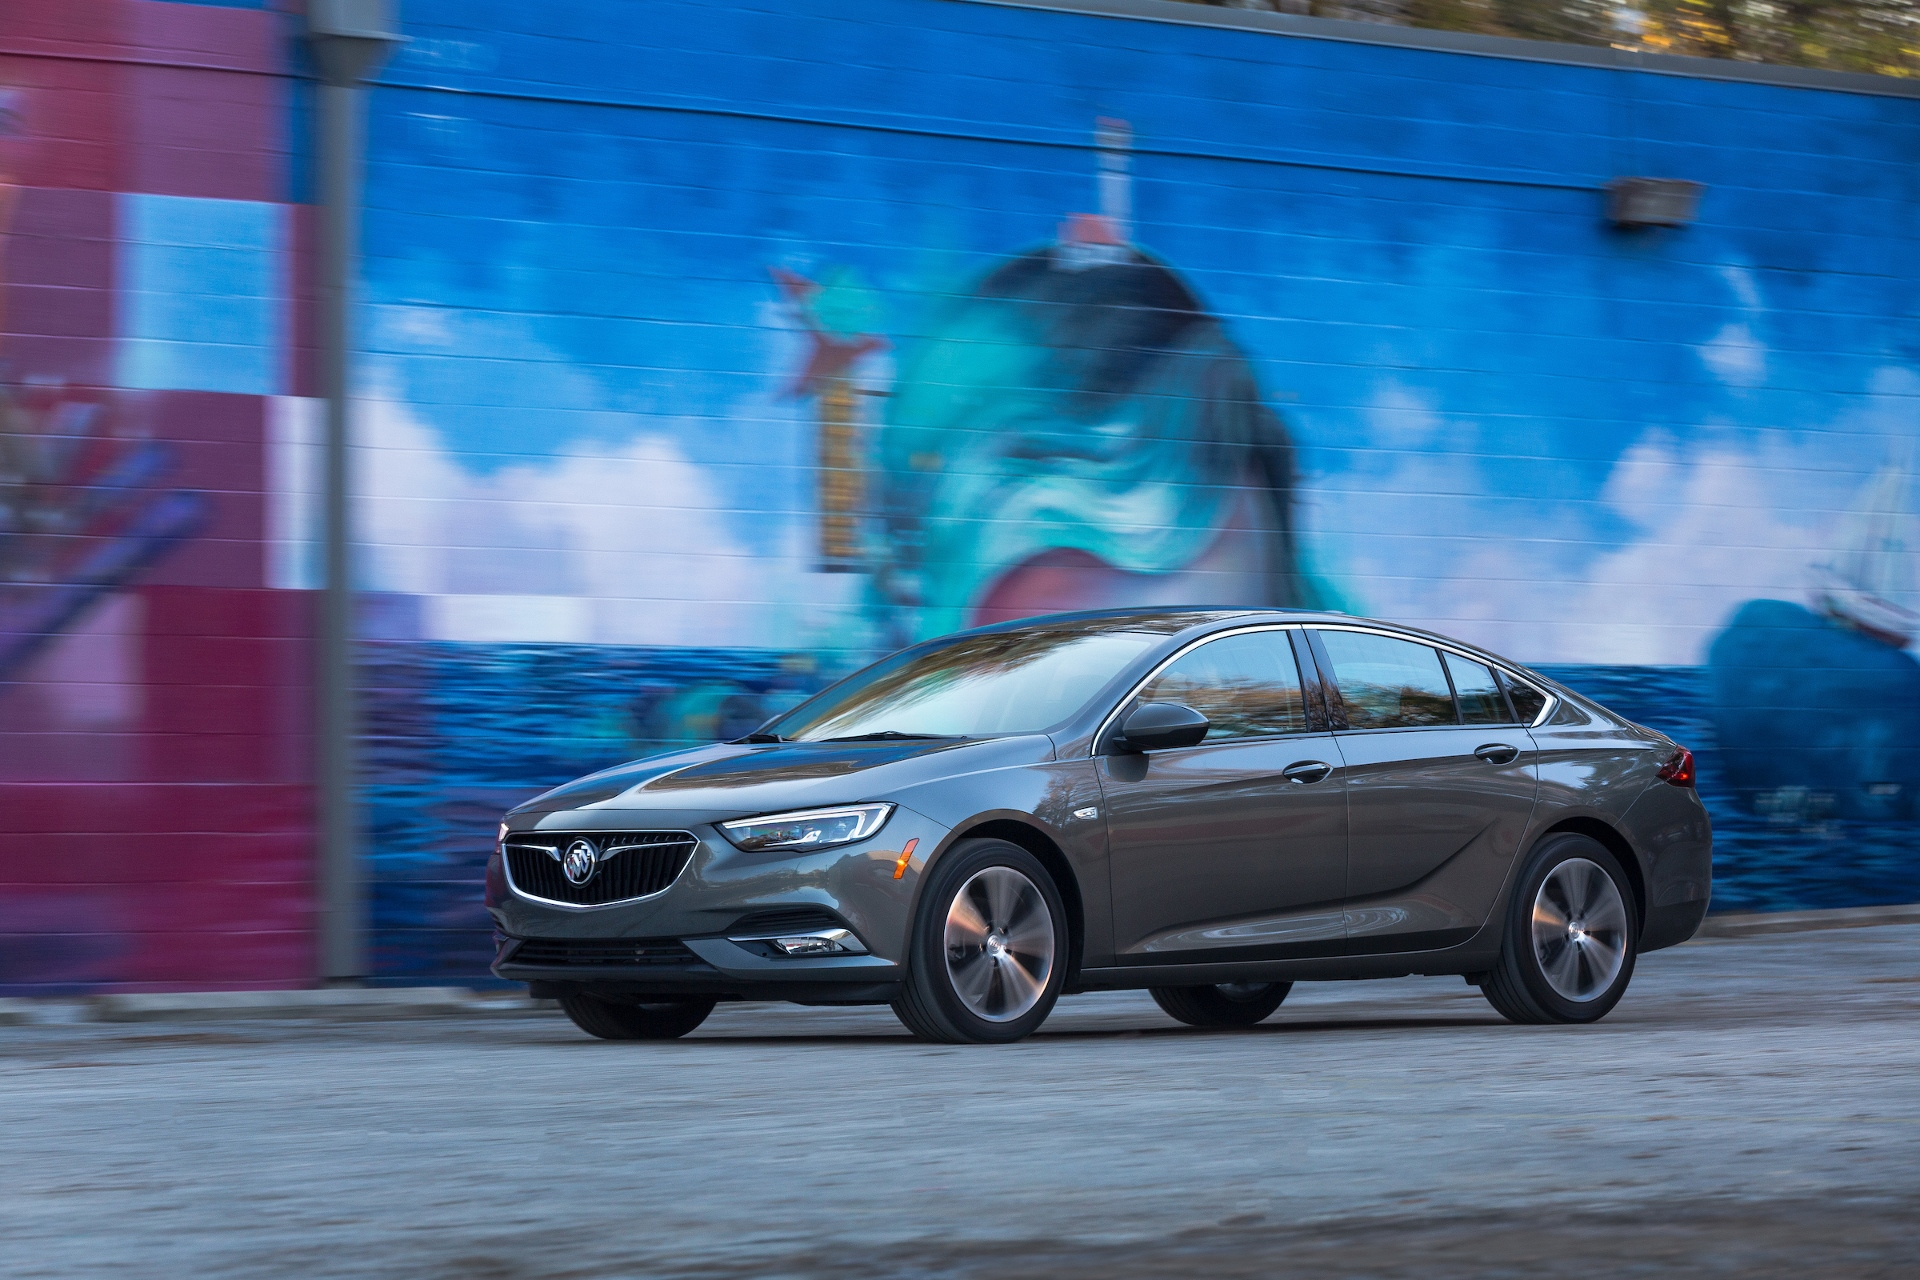 2018 Buick Regal Sportback First Drive Review: The Crossover 2022 Buick Regal Sportback Specs, Used, 0-60